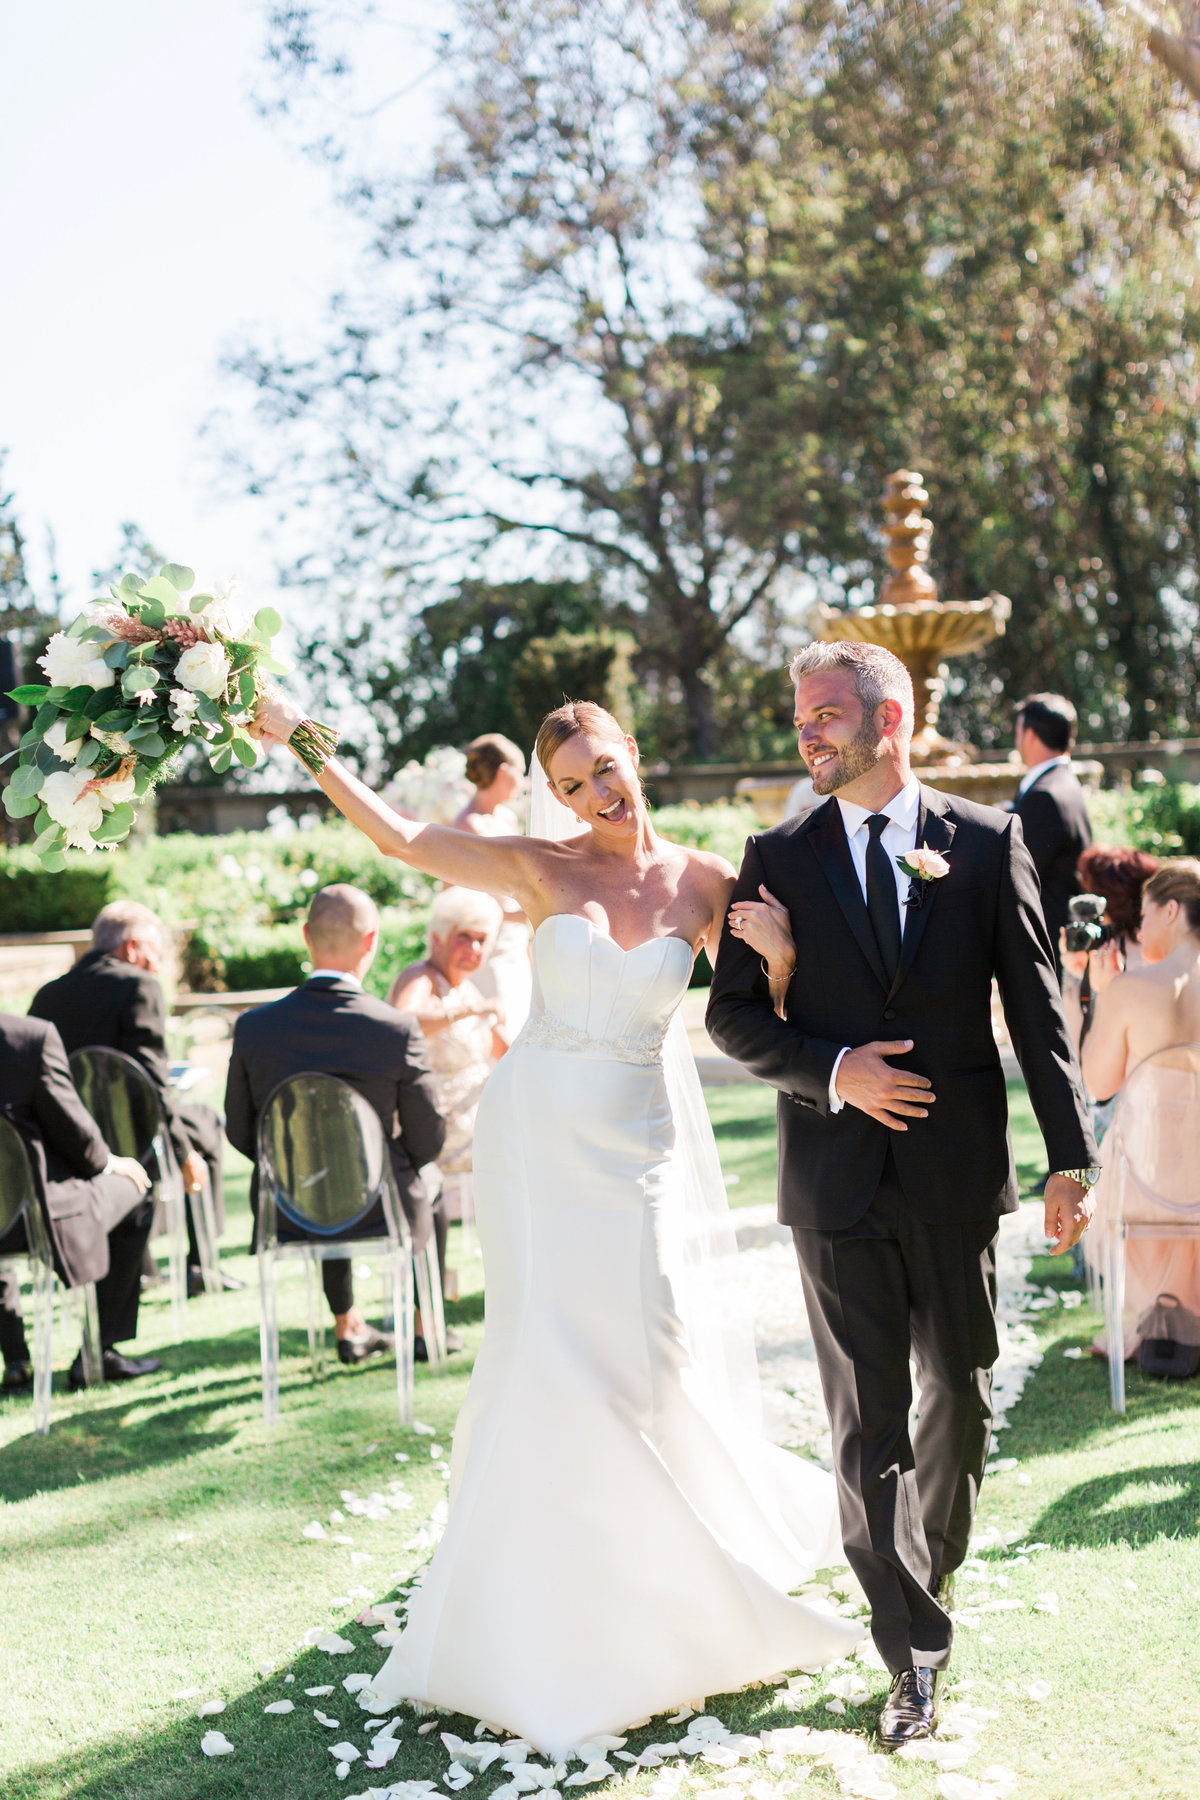 Intimate_Greystone_Mansion_Intimate_Black_Tie_Wedding_Valorie_Darling_Photography - 35 of 70